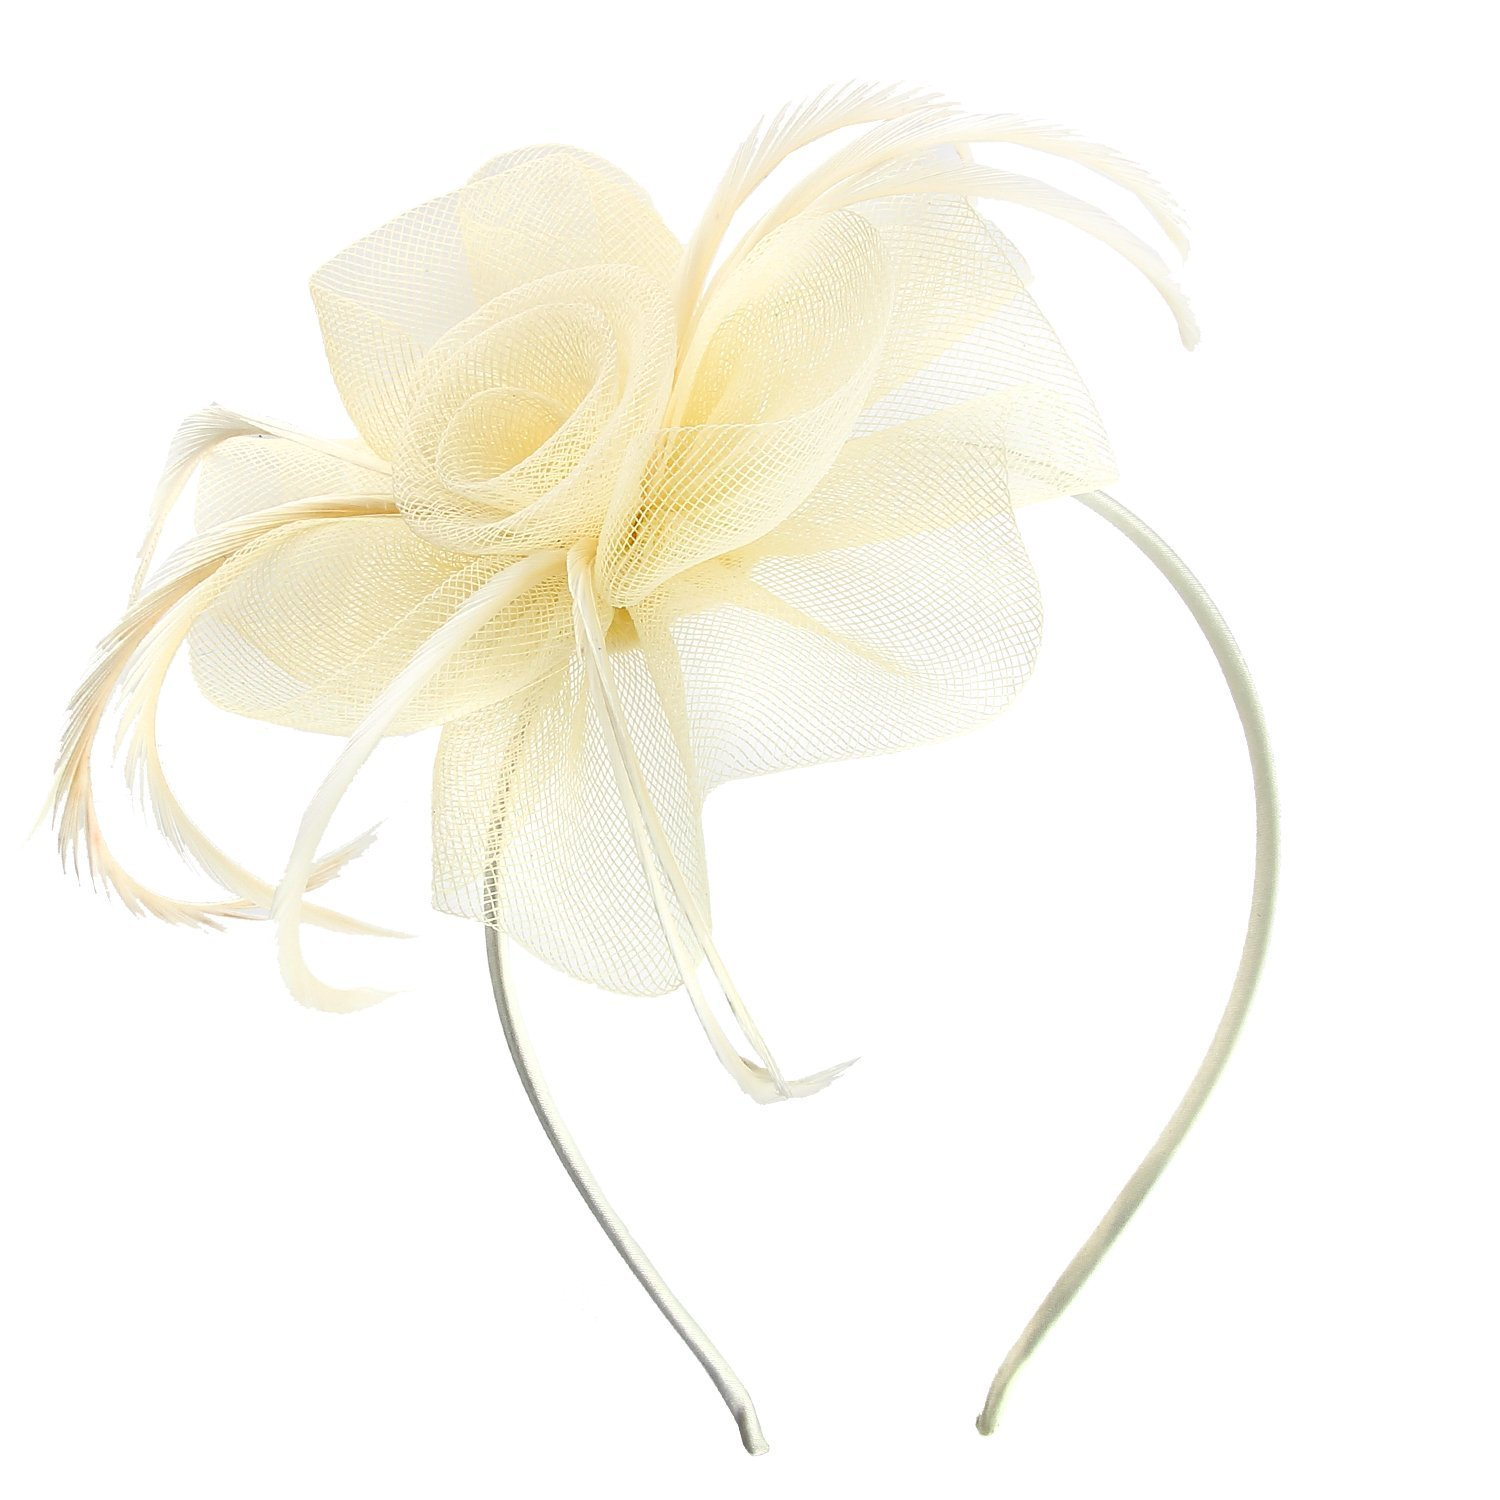 Acecharming Fascinators for Women, Feather Sinamay Fascinators with Headbands Tea Party Pillbox Hat Flower Derby Hats(Ivory)